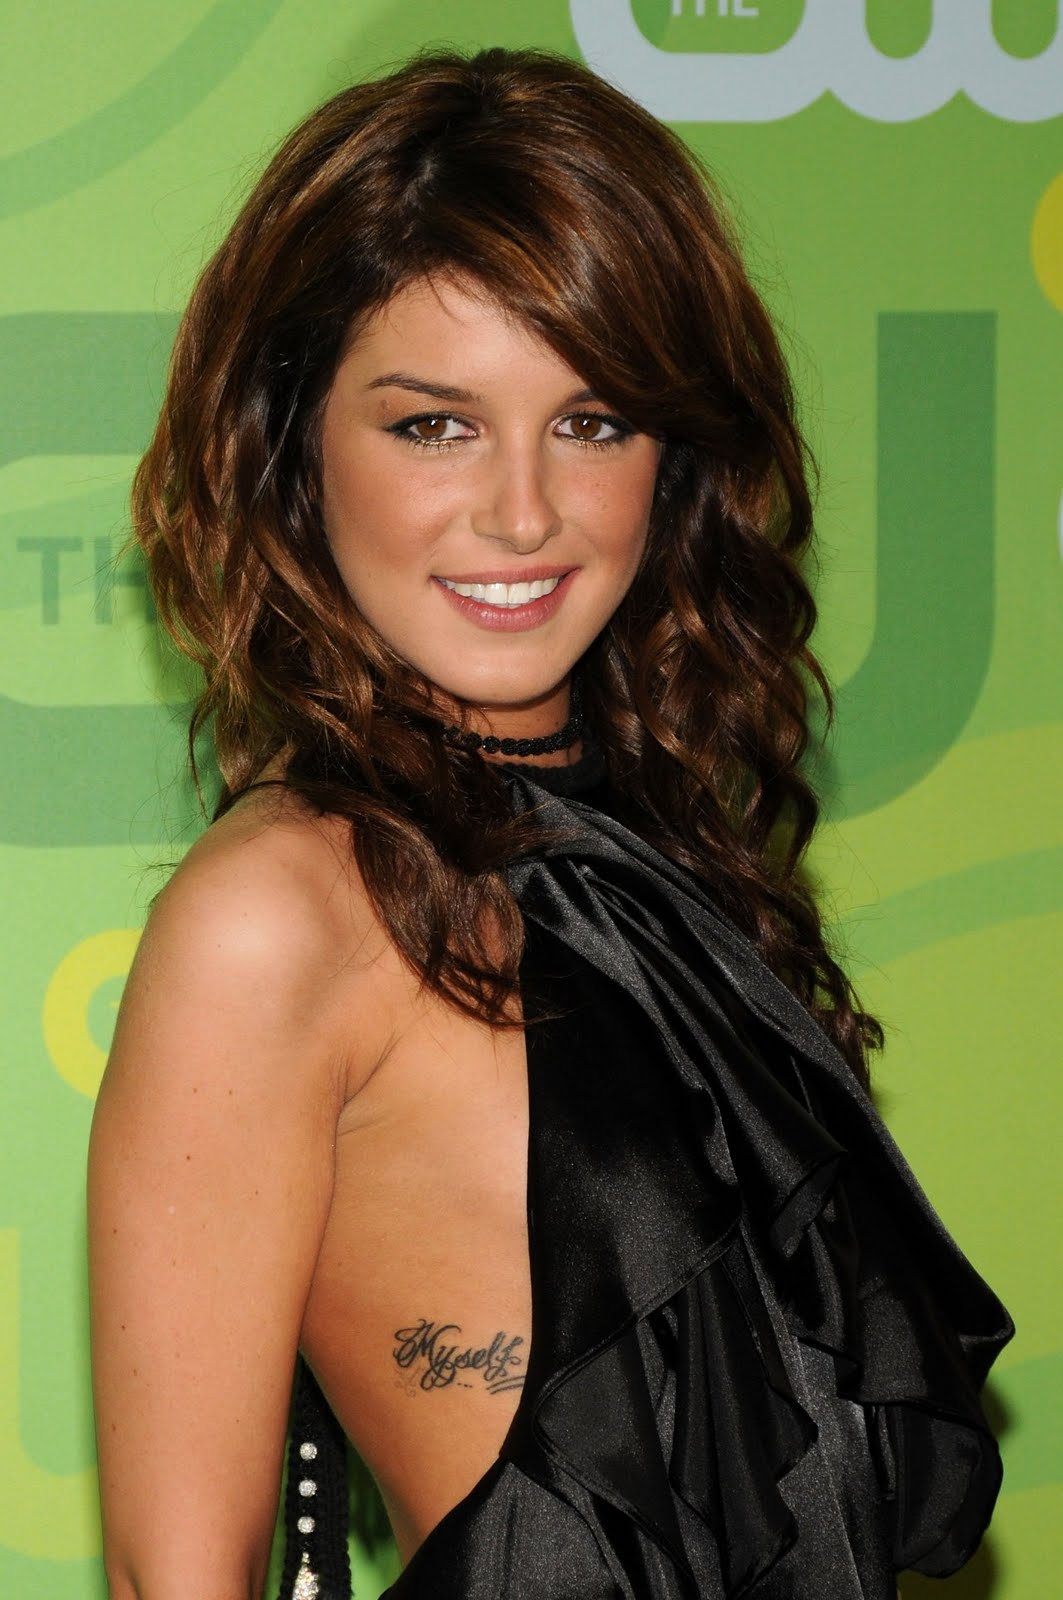 Shenae Grimes Side Breast Tattoo